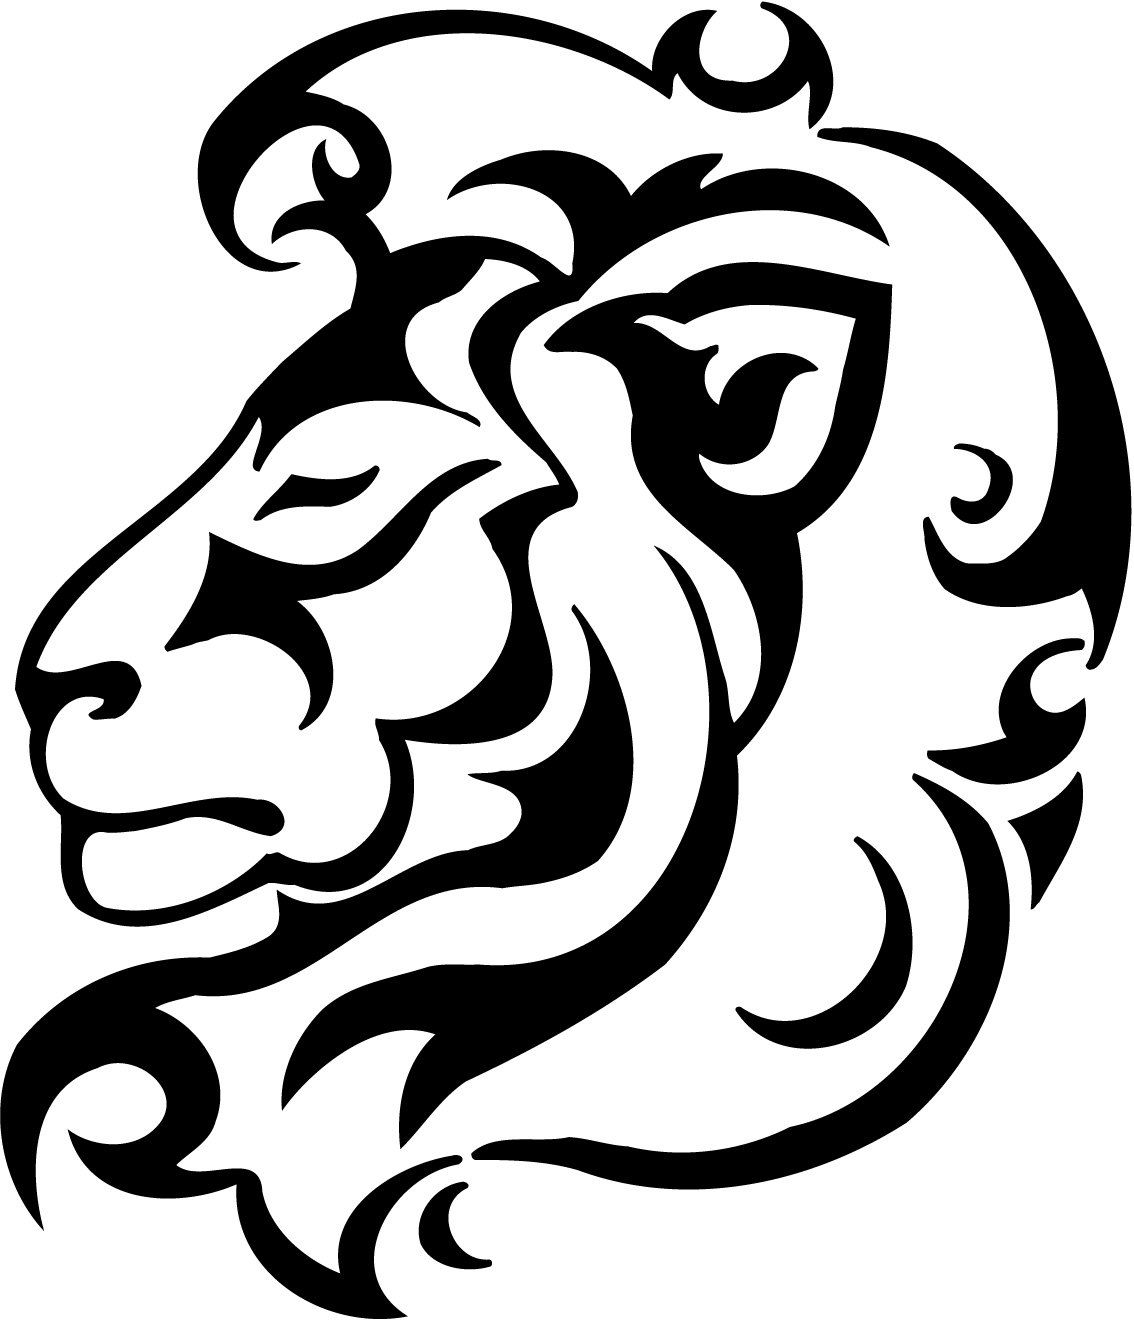 Lion Vinyl Decal By Theonecherryblossom On Etsy 4 50